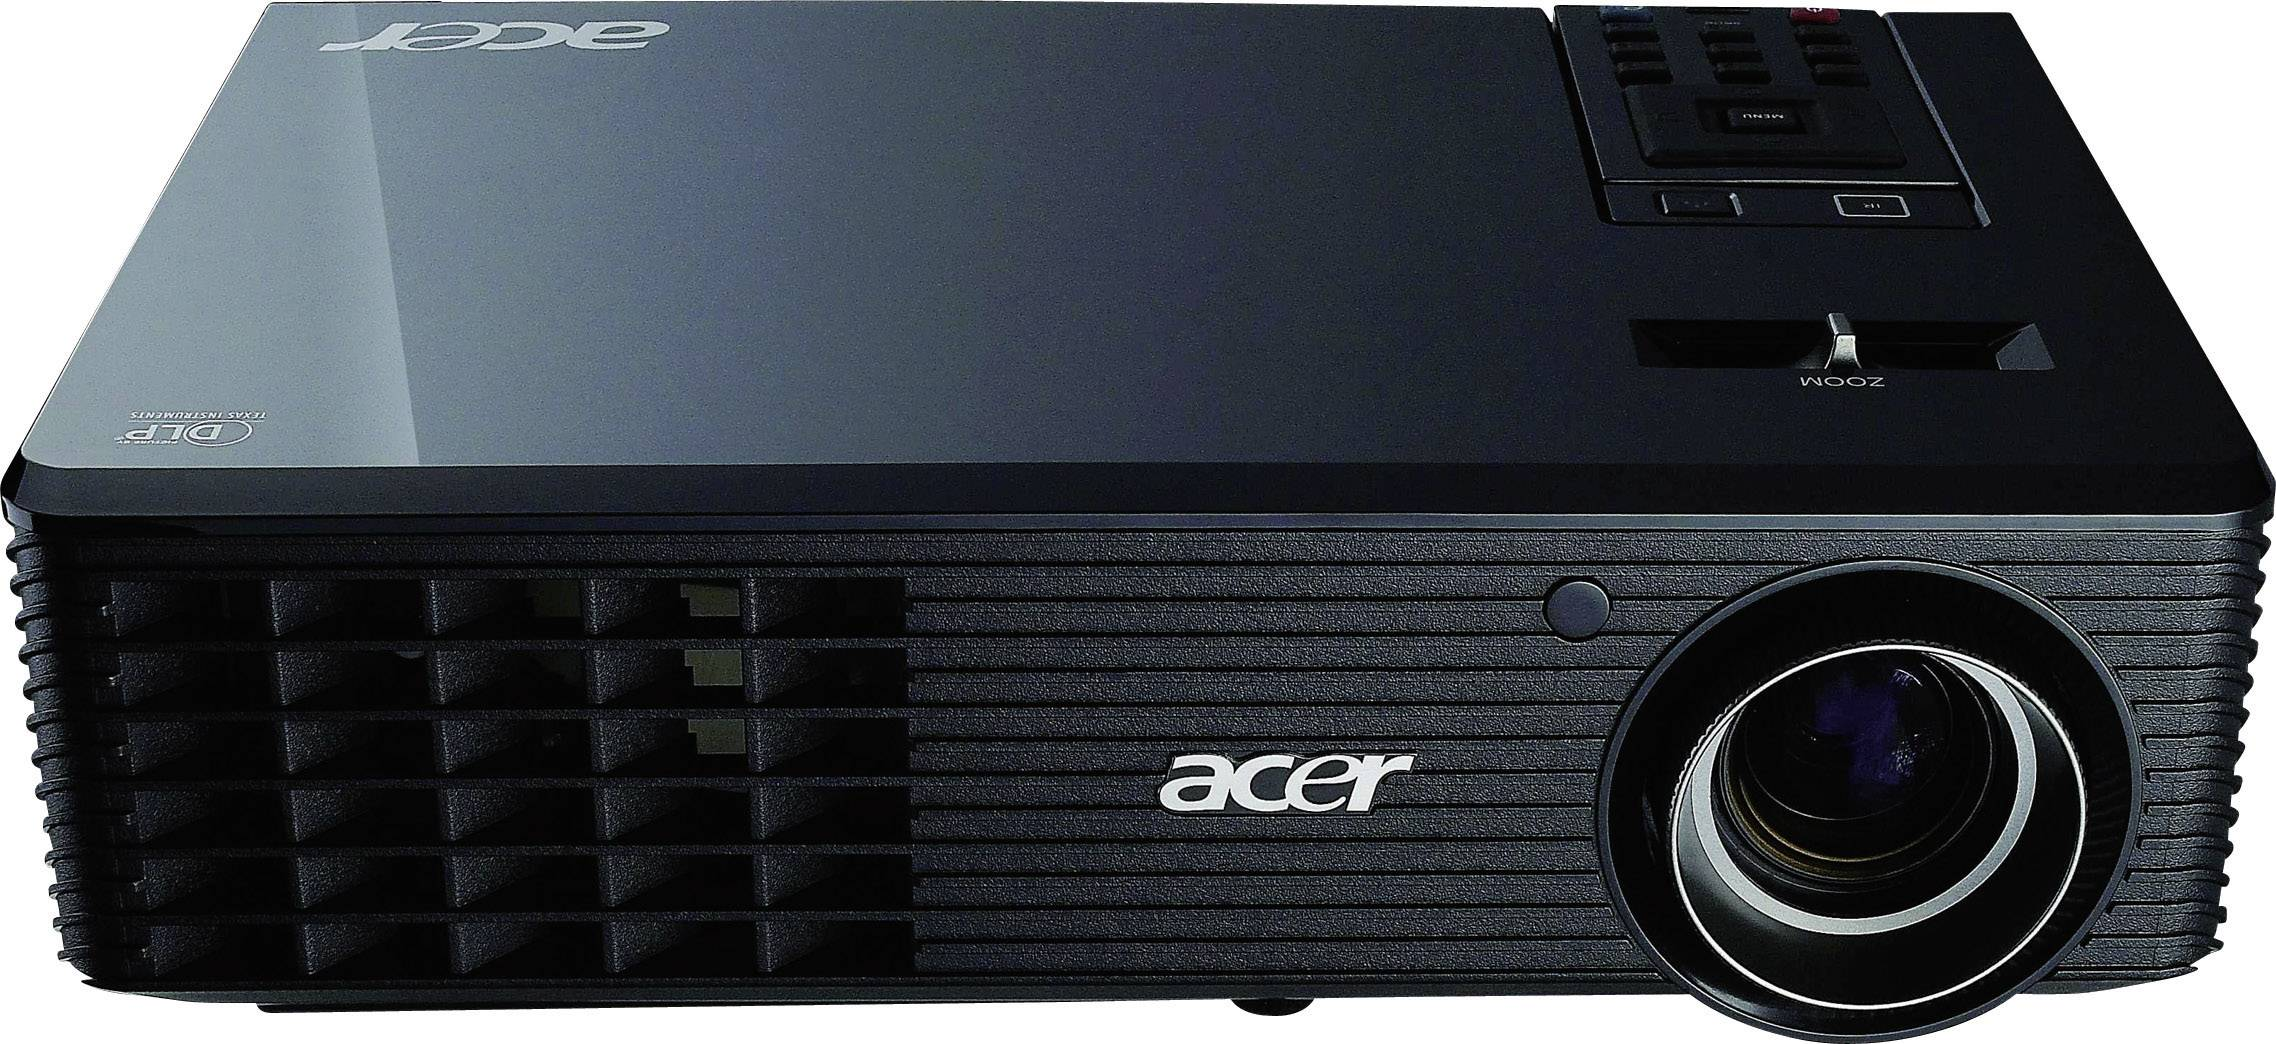 acer x110p dlp projector ansi lumens 2700 800 x 600 5000 hrs rh conrad electronic co uk User Manual Acer E1-531 Acer User Manual PDF